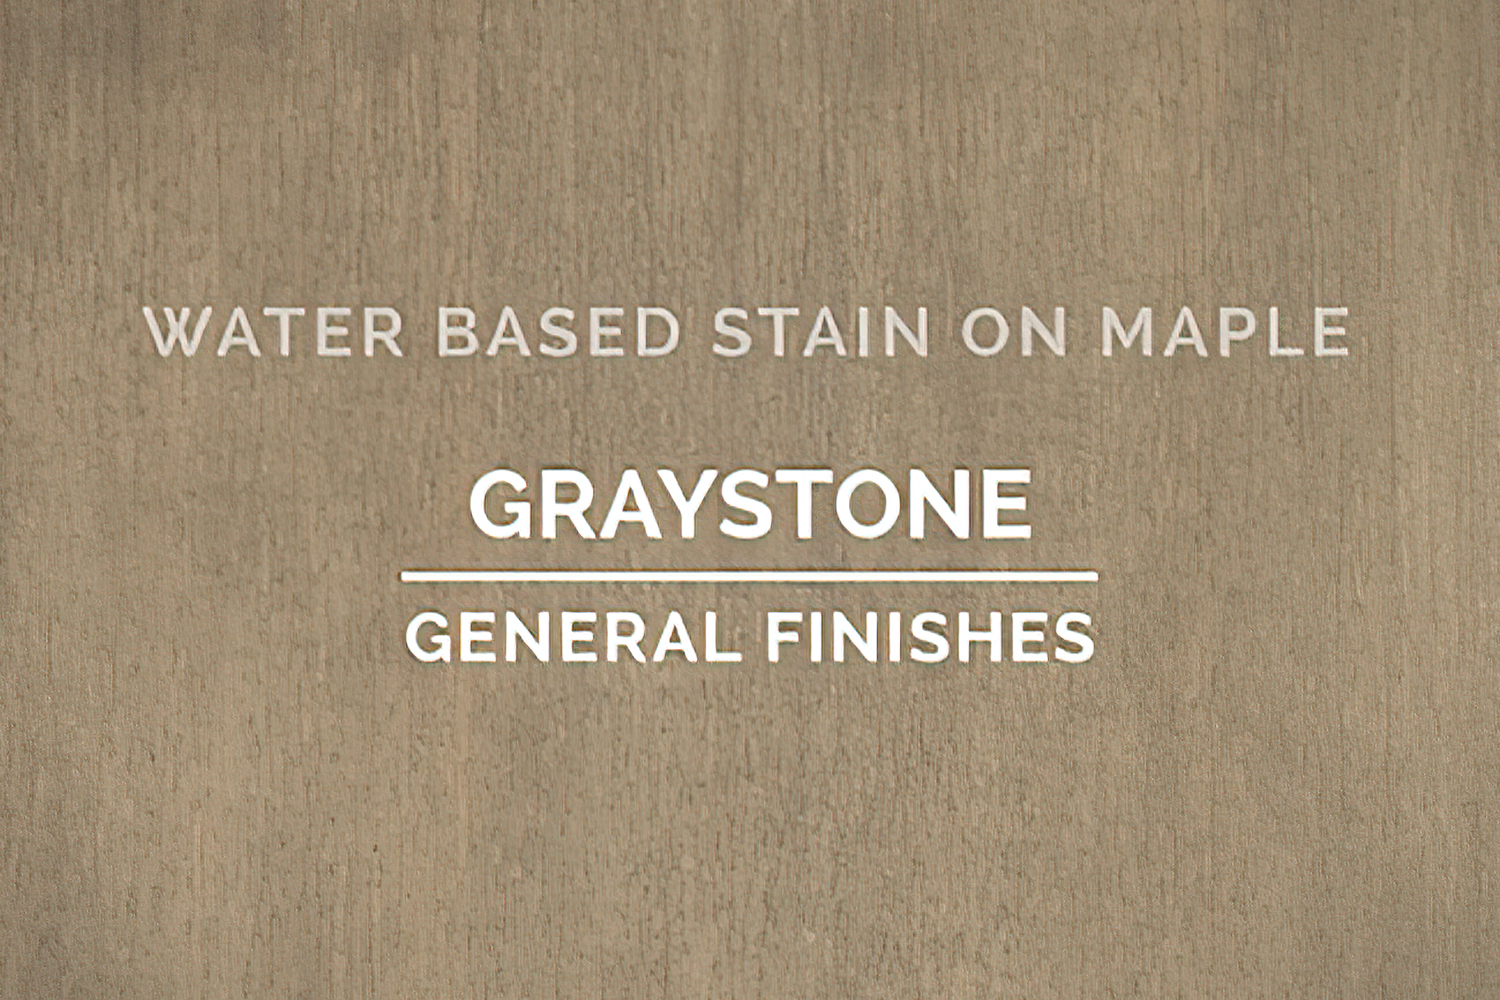 General Finishes Graystone Stain Water Based